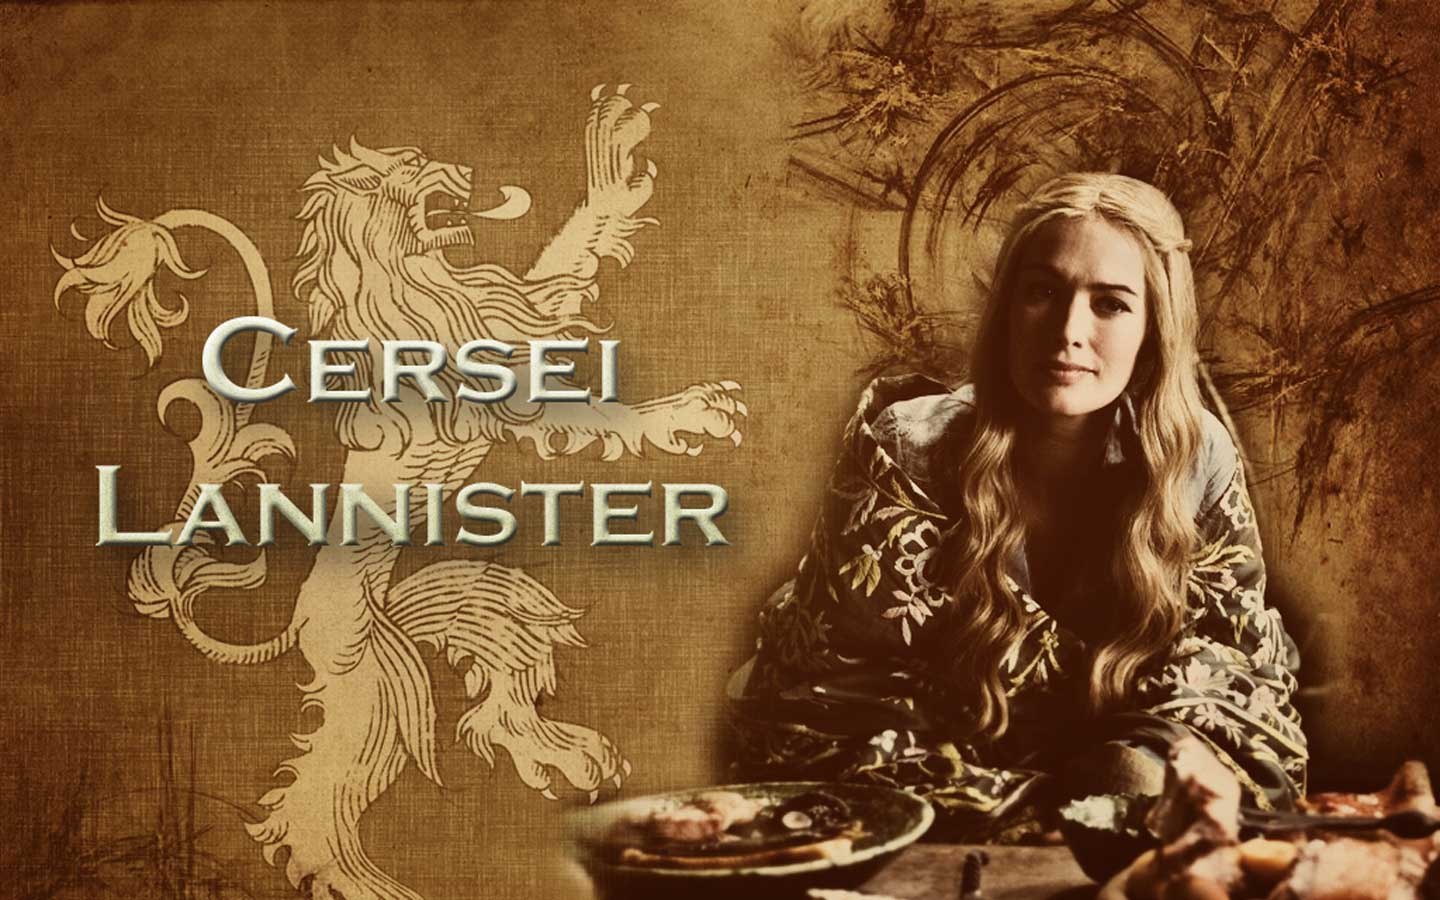 http://2.bp.blogspot.com/-c73QBo4s0Ns/Tm6e37lt6qI/AAAAAAAAAhQ/fcDHv1kqnzo/s1600/cersei+lannister+game+of+thrones+wallpaper+apps-for-androidhd.blogspot.com.jpg